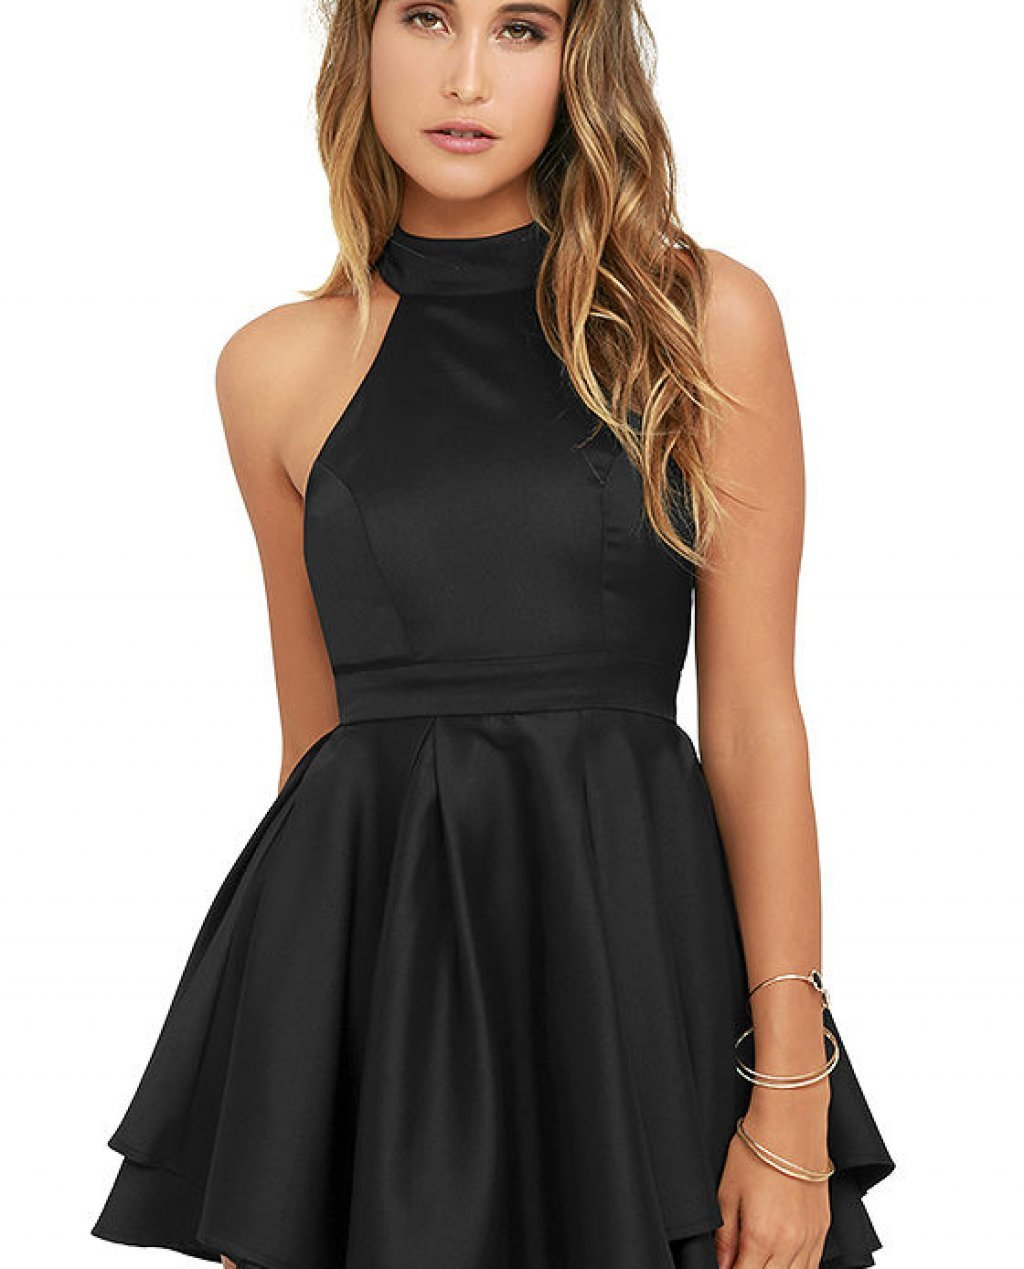 Dress Rehearsal Black Skater Dress